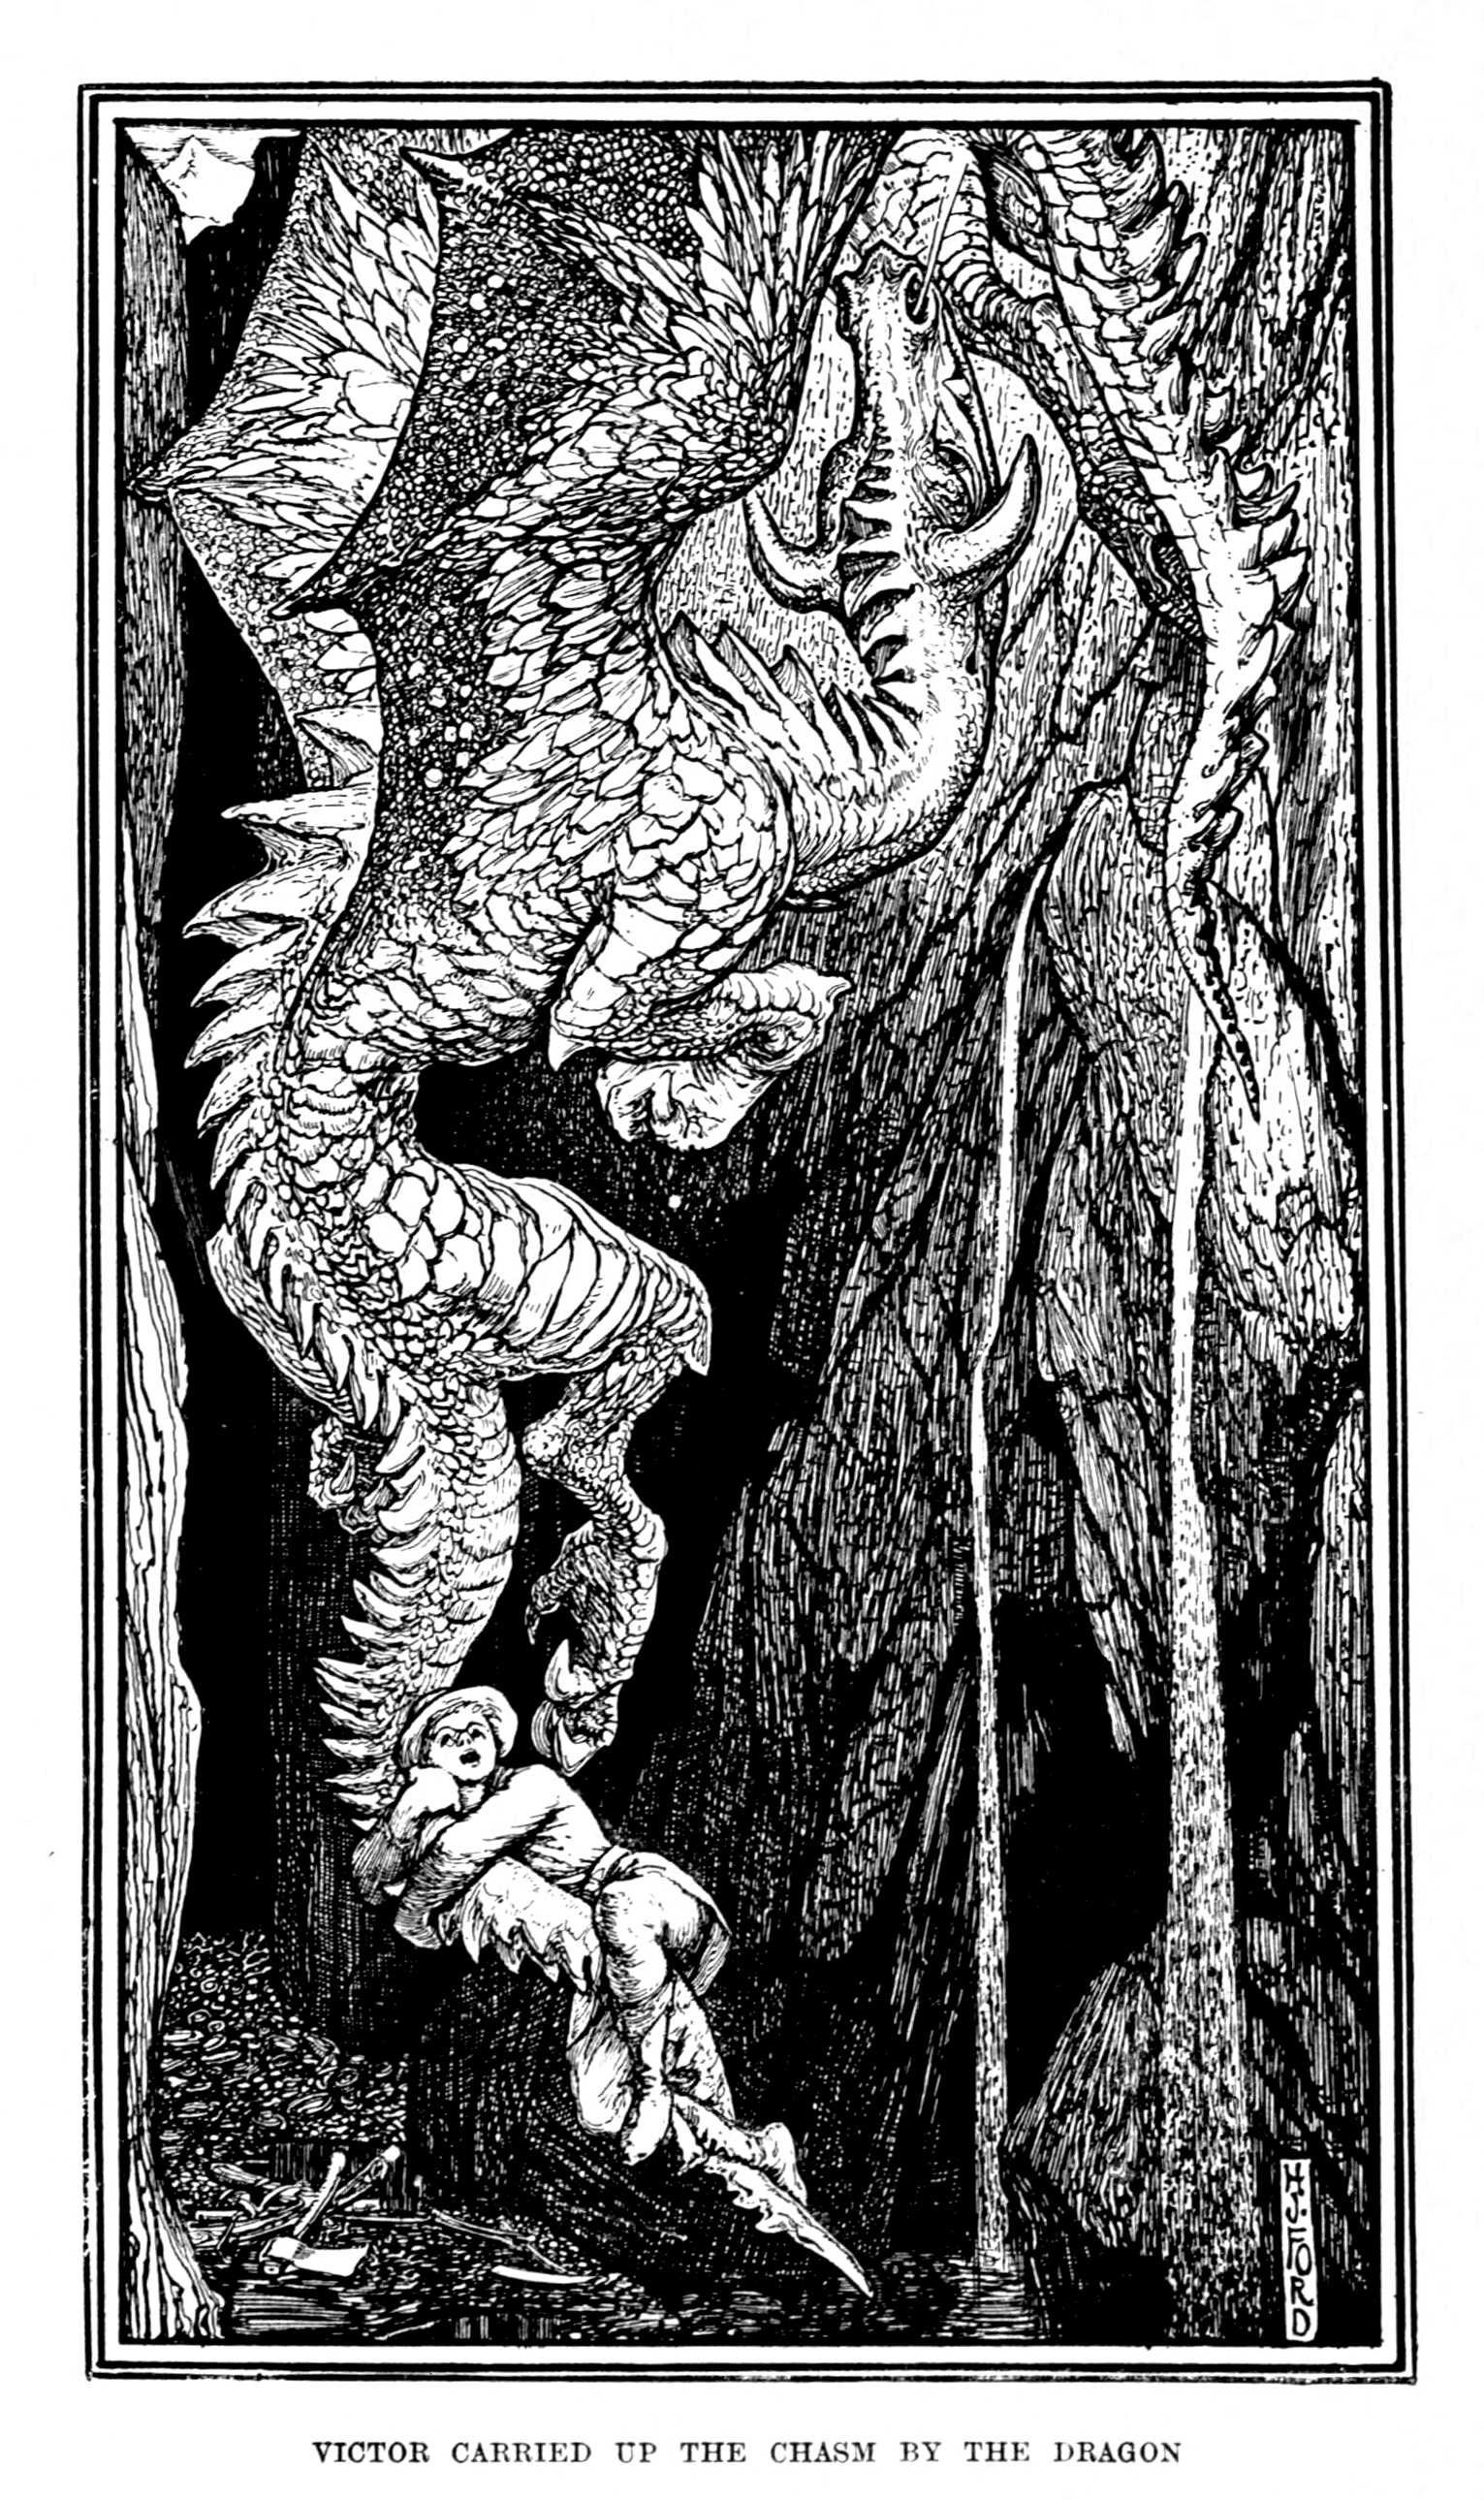 Henry Justice Ford - The red book of animal stories selected and edited by Andrew Lang, 1899 (illustration 5)